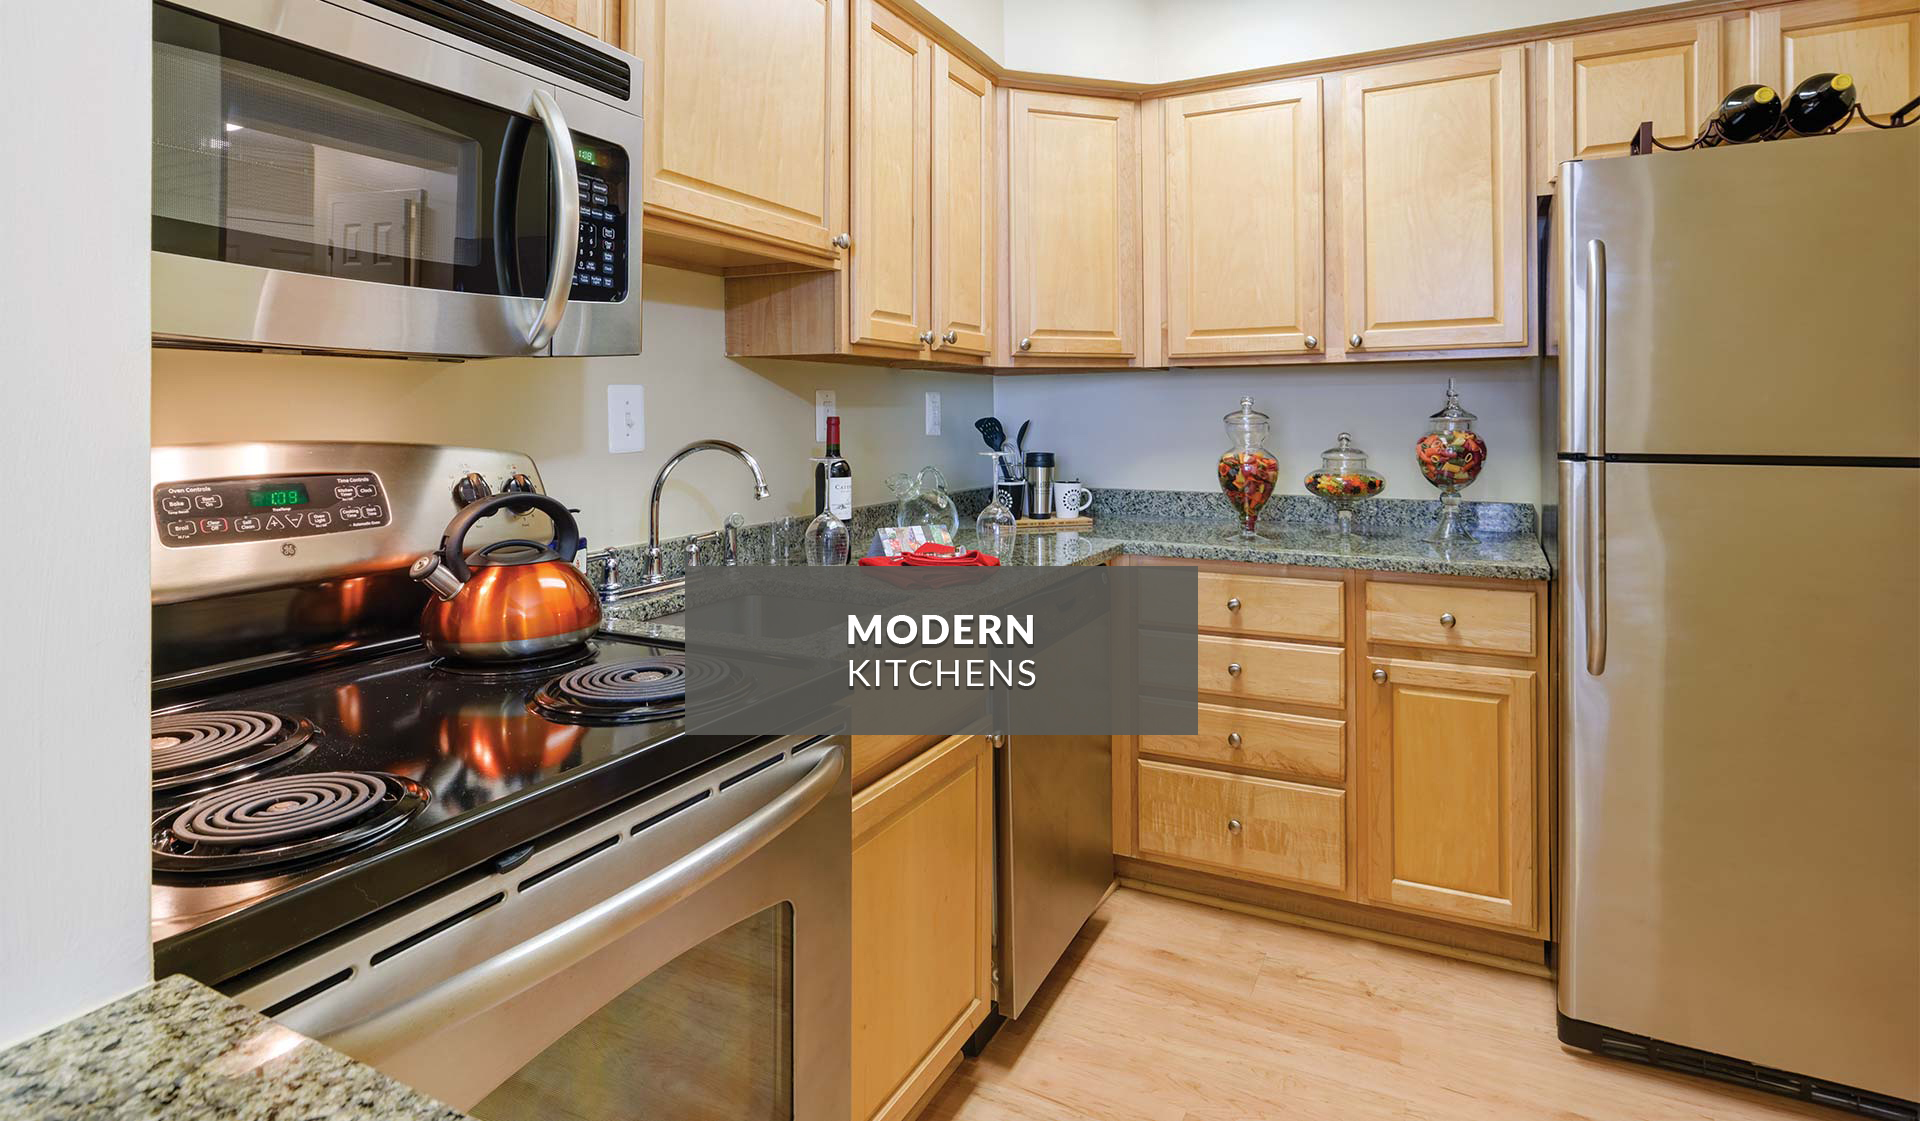 Latrobe Apartments - Modern Kitchens - Washington, DC